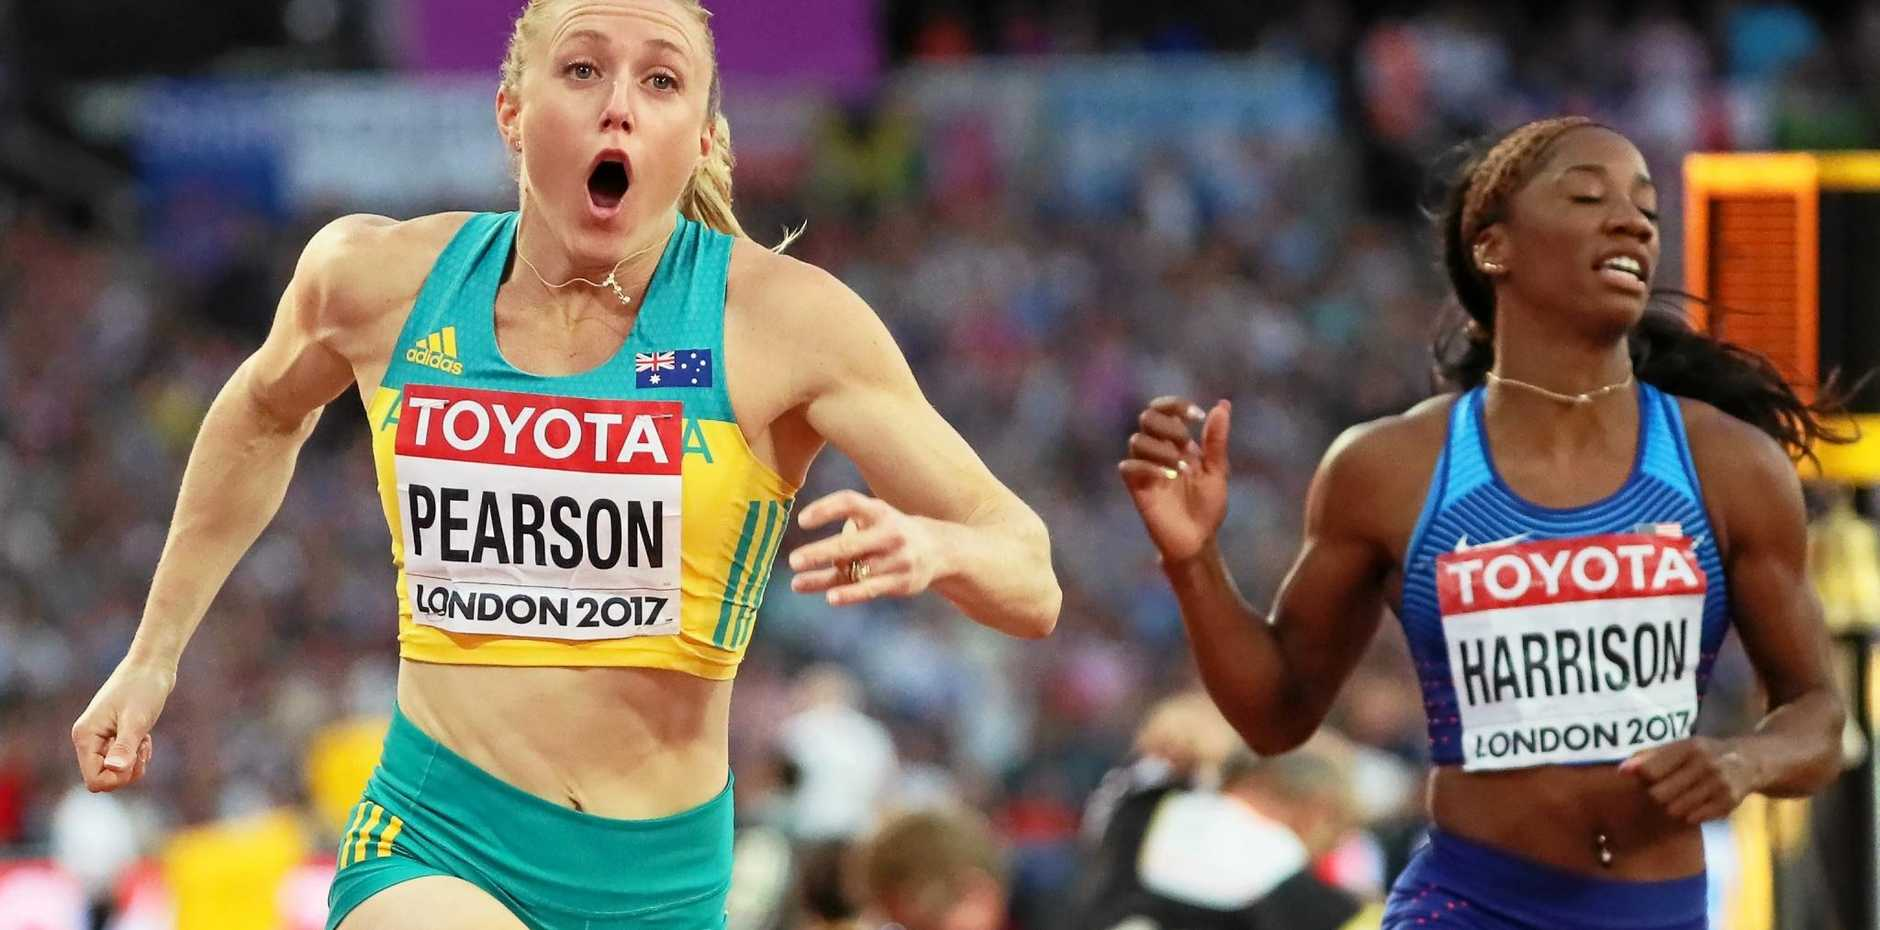 Sally Pearson (L) reacts after crossing the finish line to win the women's 100m Hurdles final